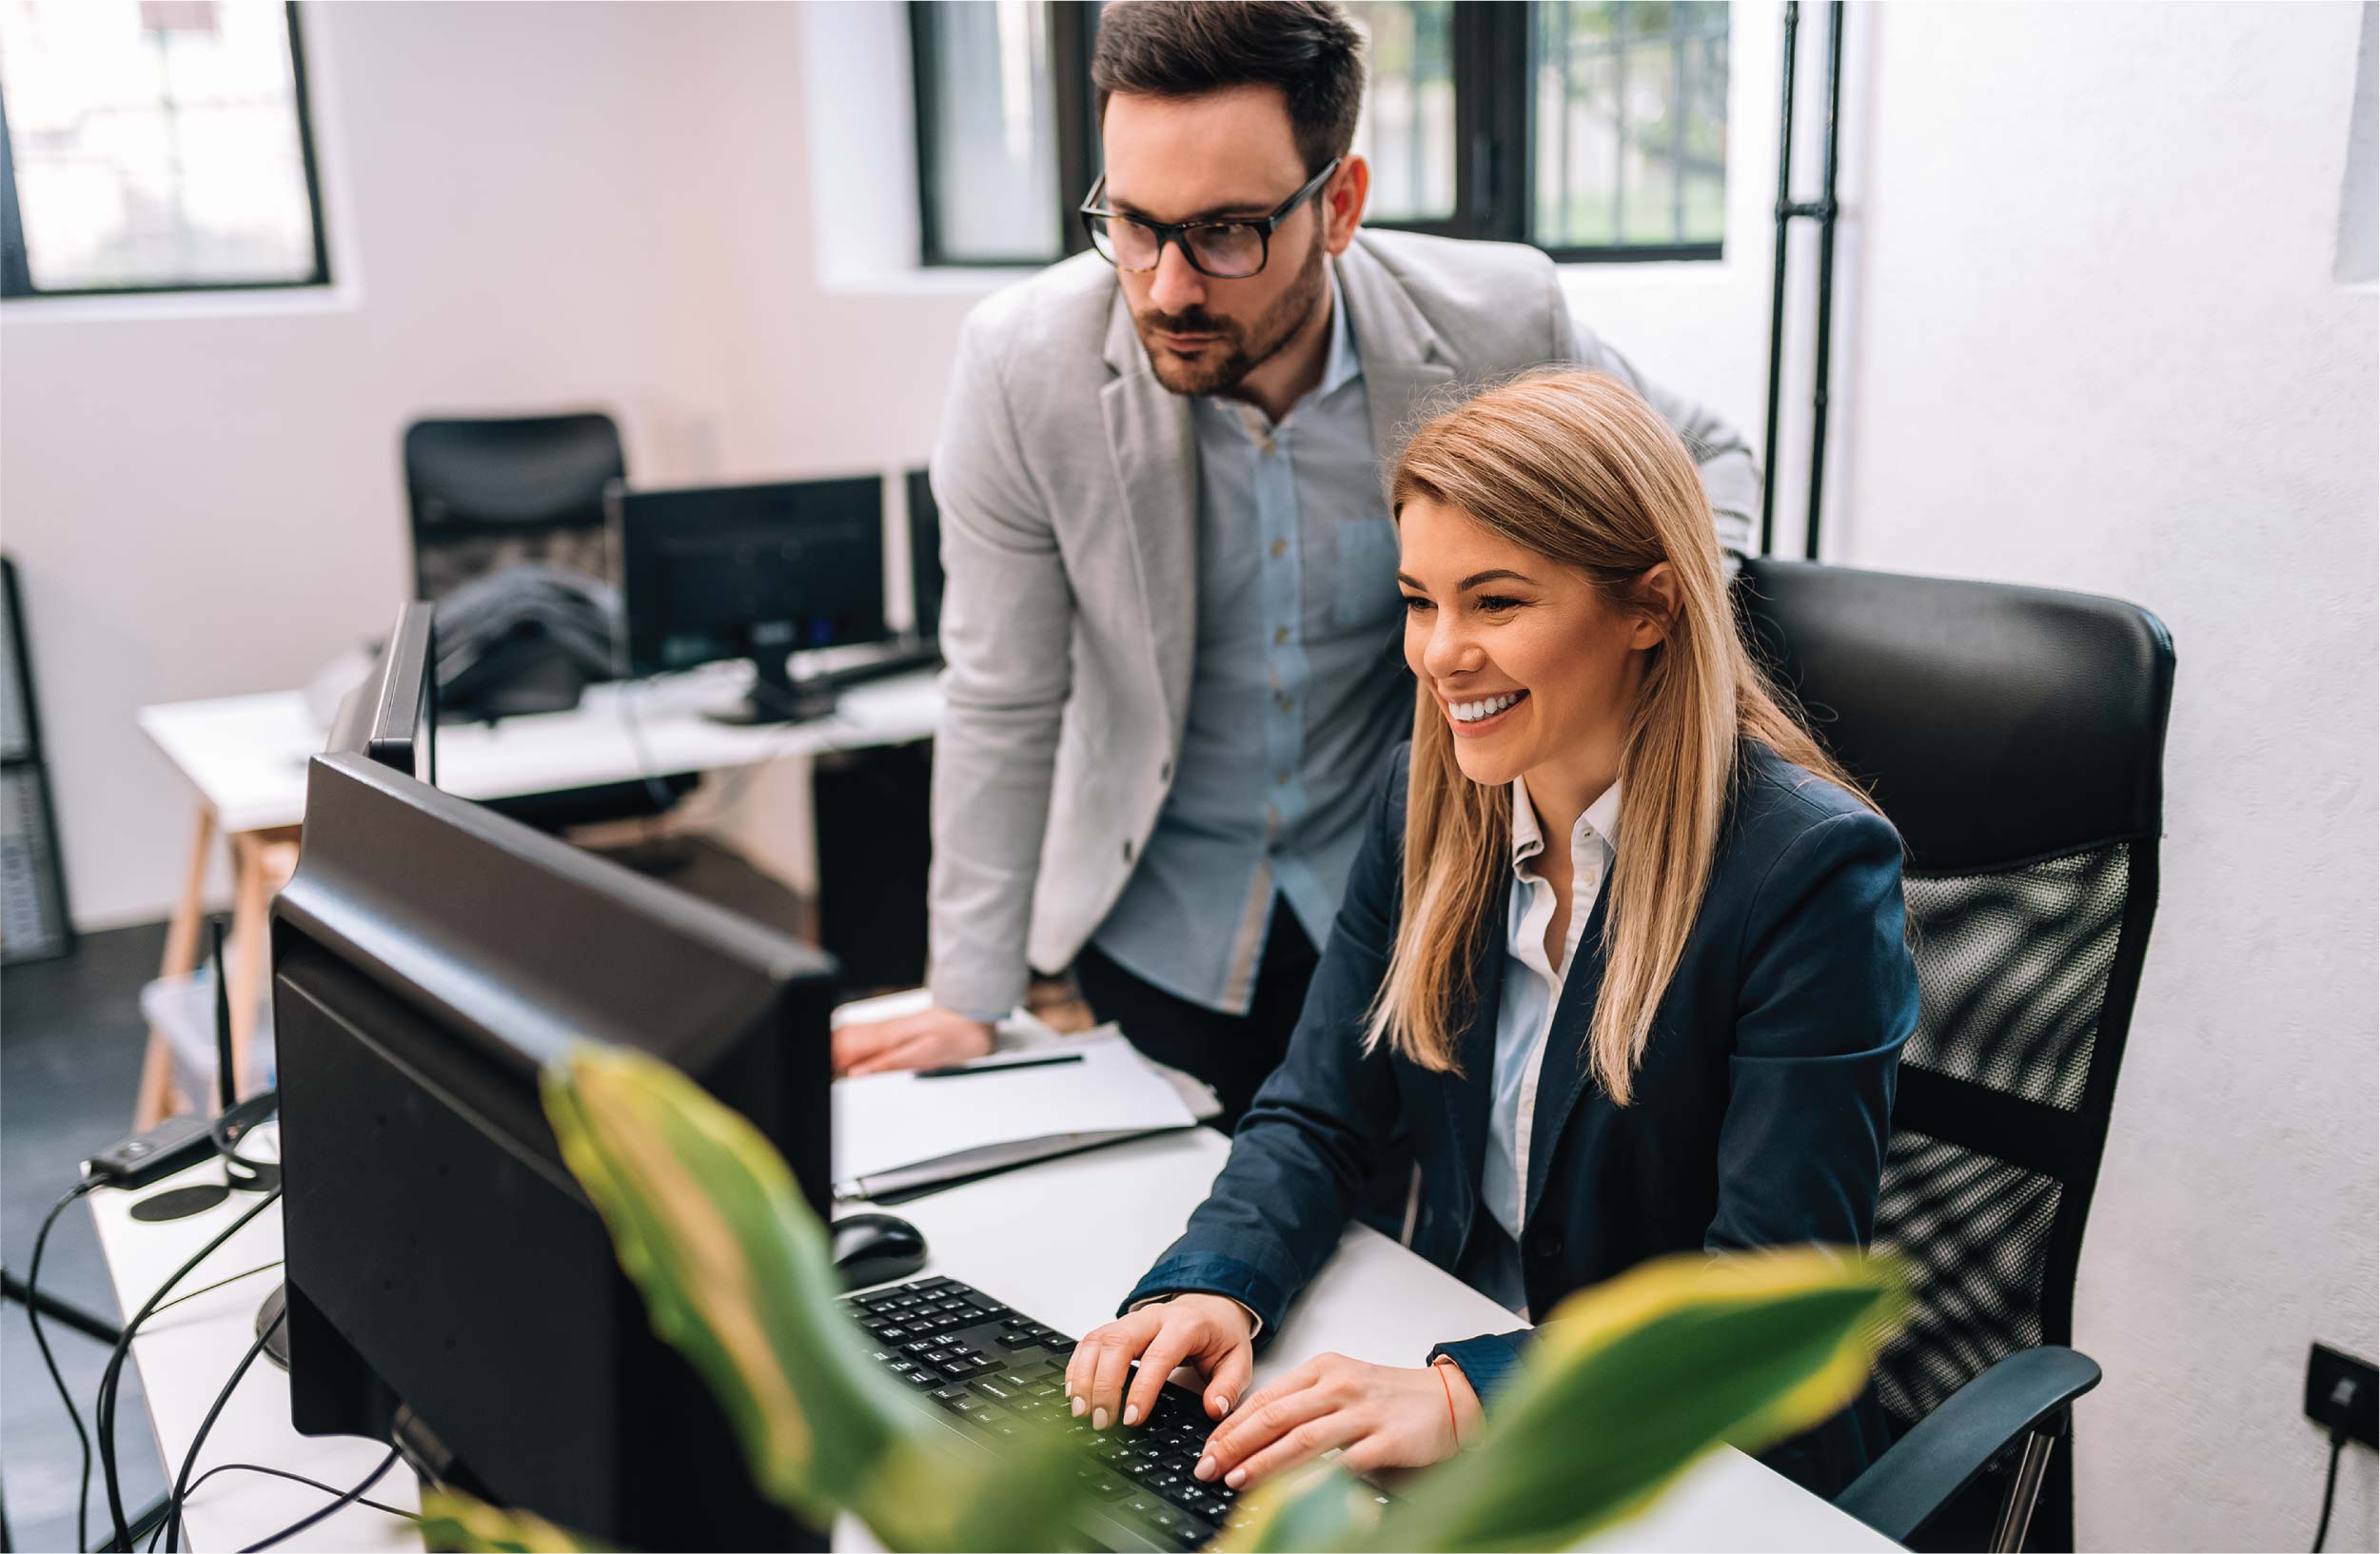 male executive boss supervising computer work of a young female employee | Botkeeper